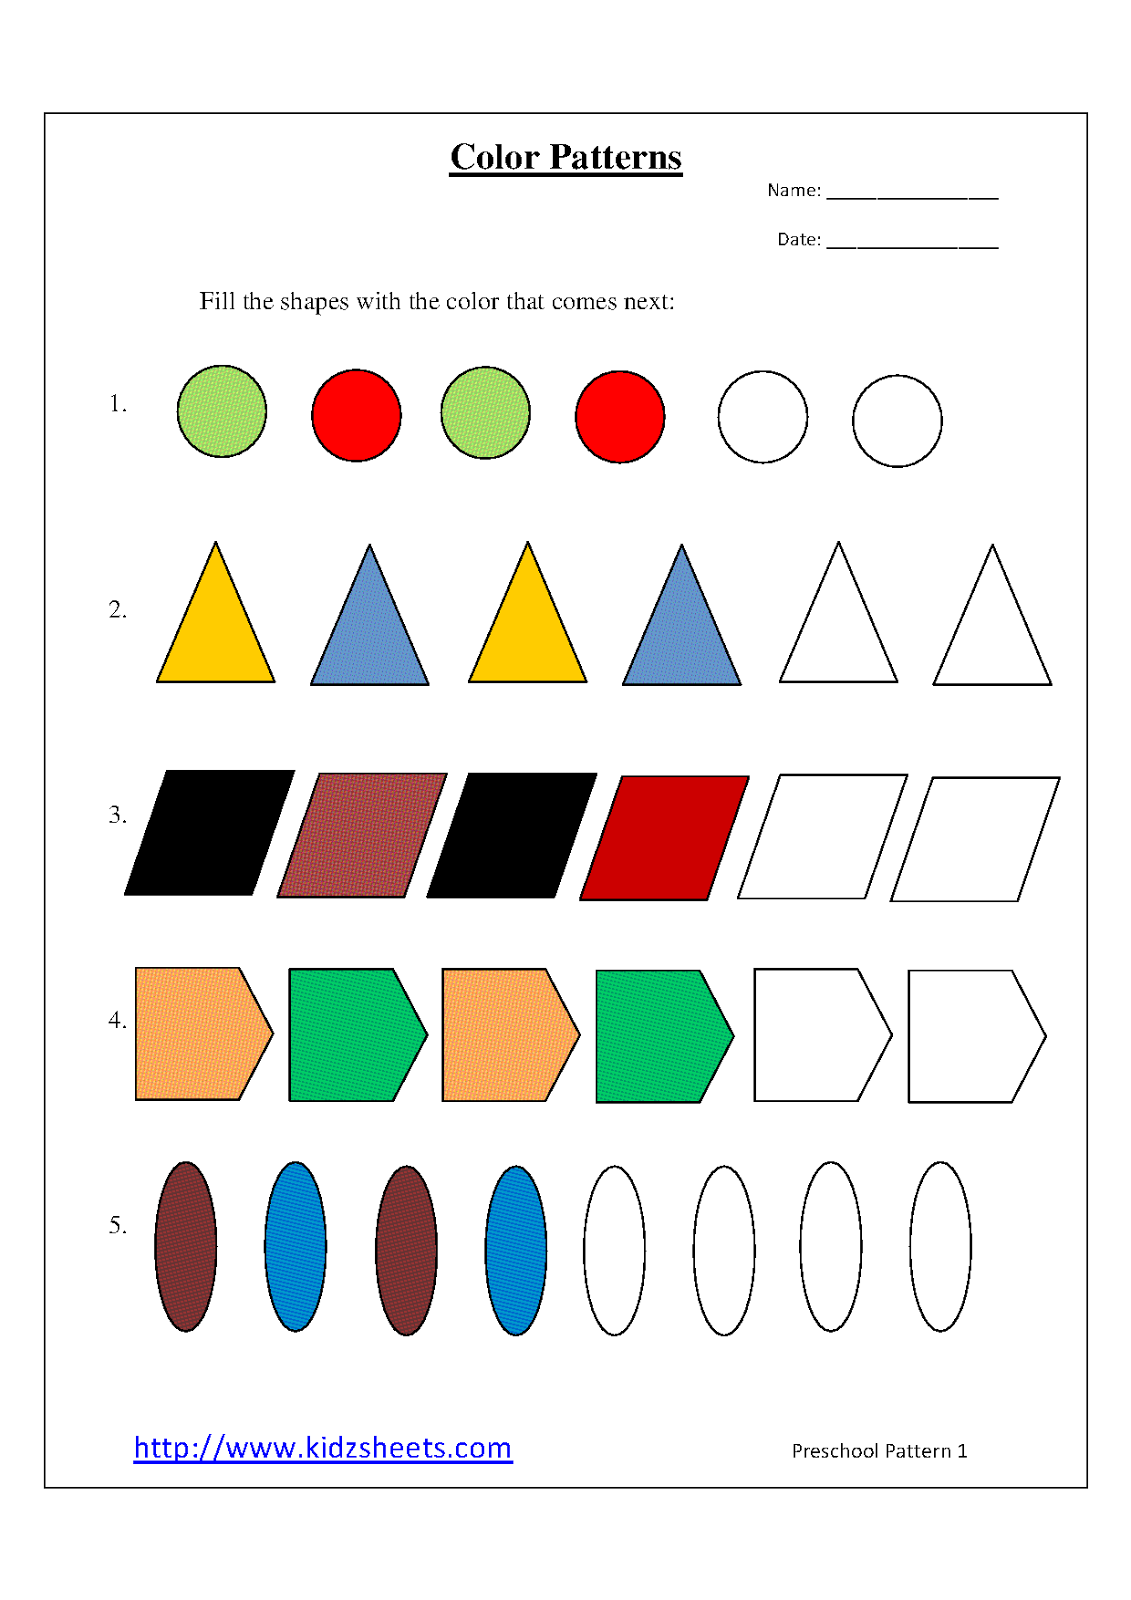 Kidz Worksheets Preschool Color Patterns Worksheet1 – Pattern Worksheets for Preschool